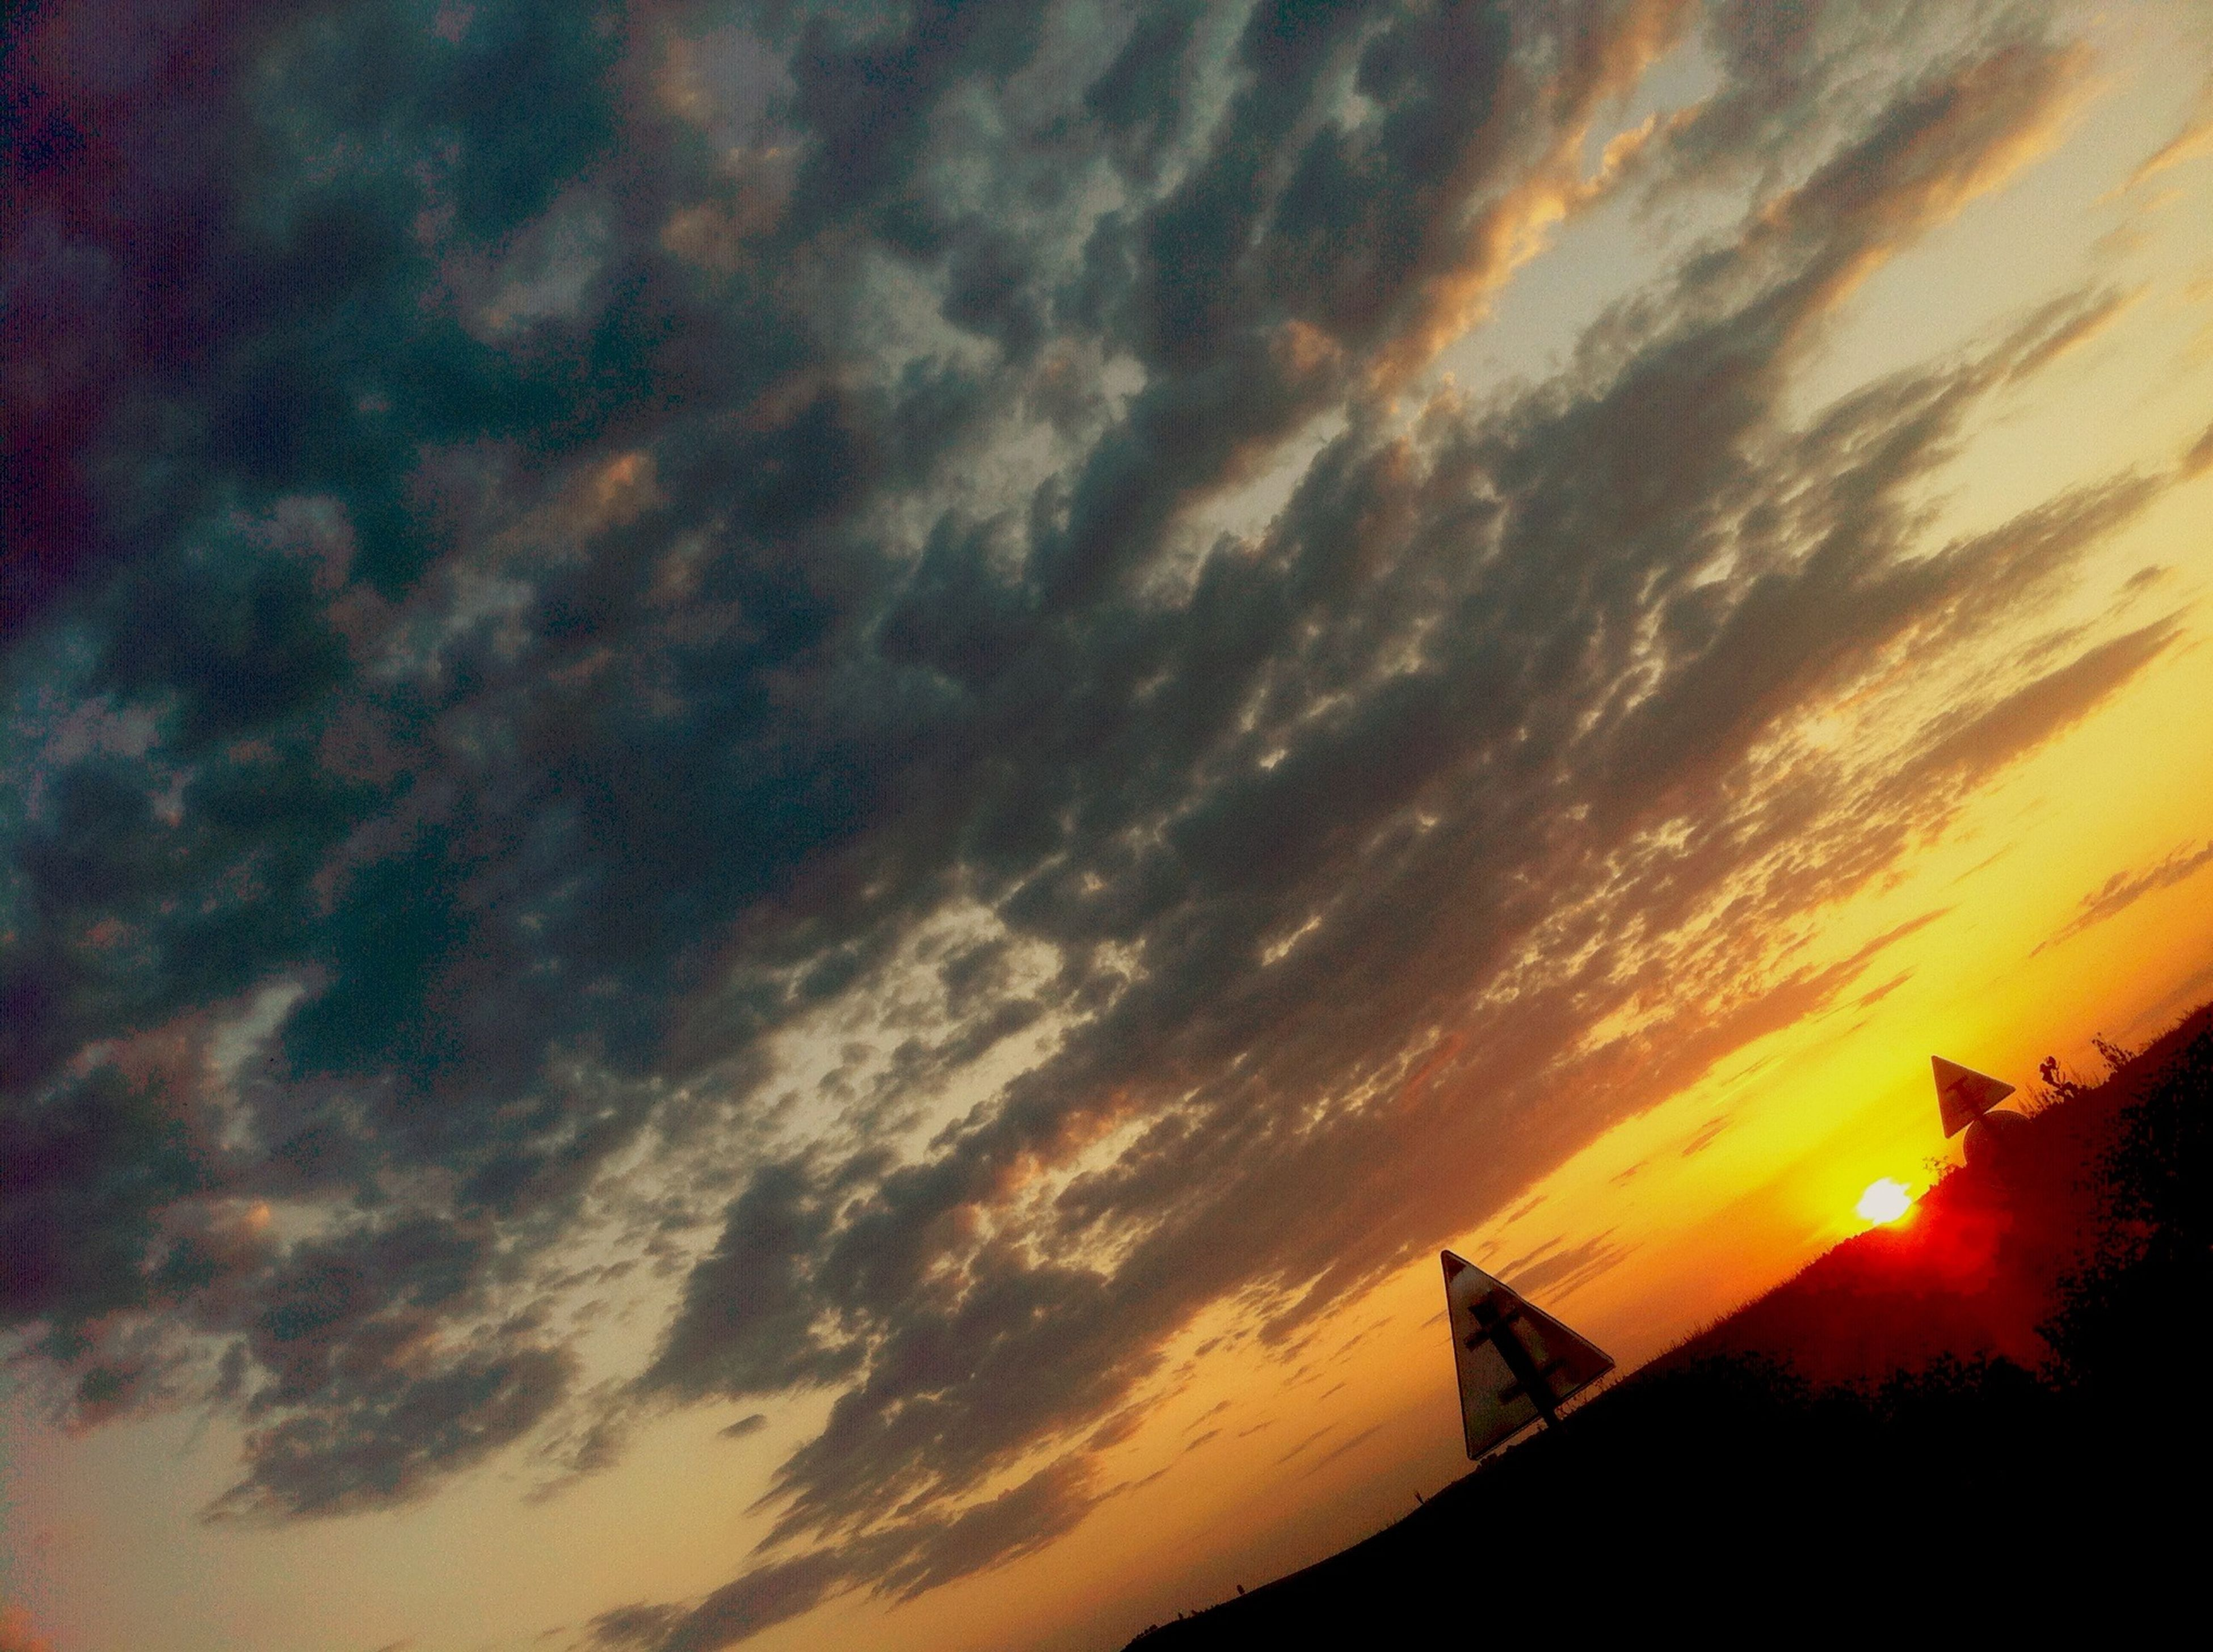 sunset, sky, architecture, silhouette, building exterior, built structure, cloud - sky, low angle view, orange color, cloudy, cloud, scenics, beauty in nature, dramatic sky, nature, outdoors, high section, tranquility, house, no people